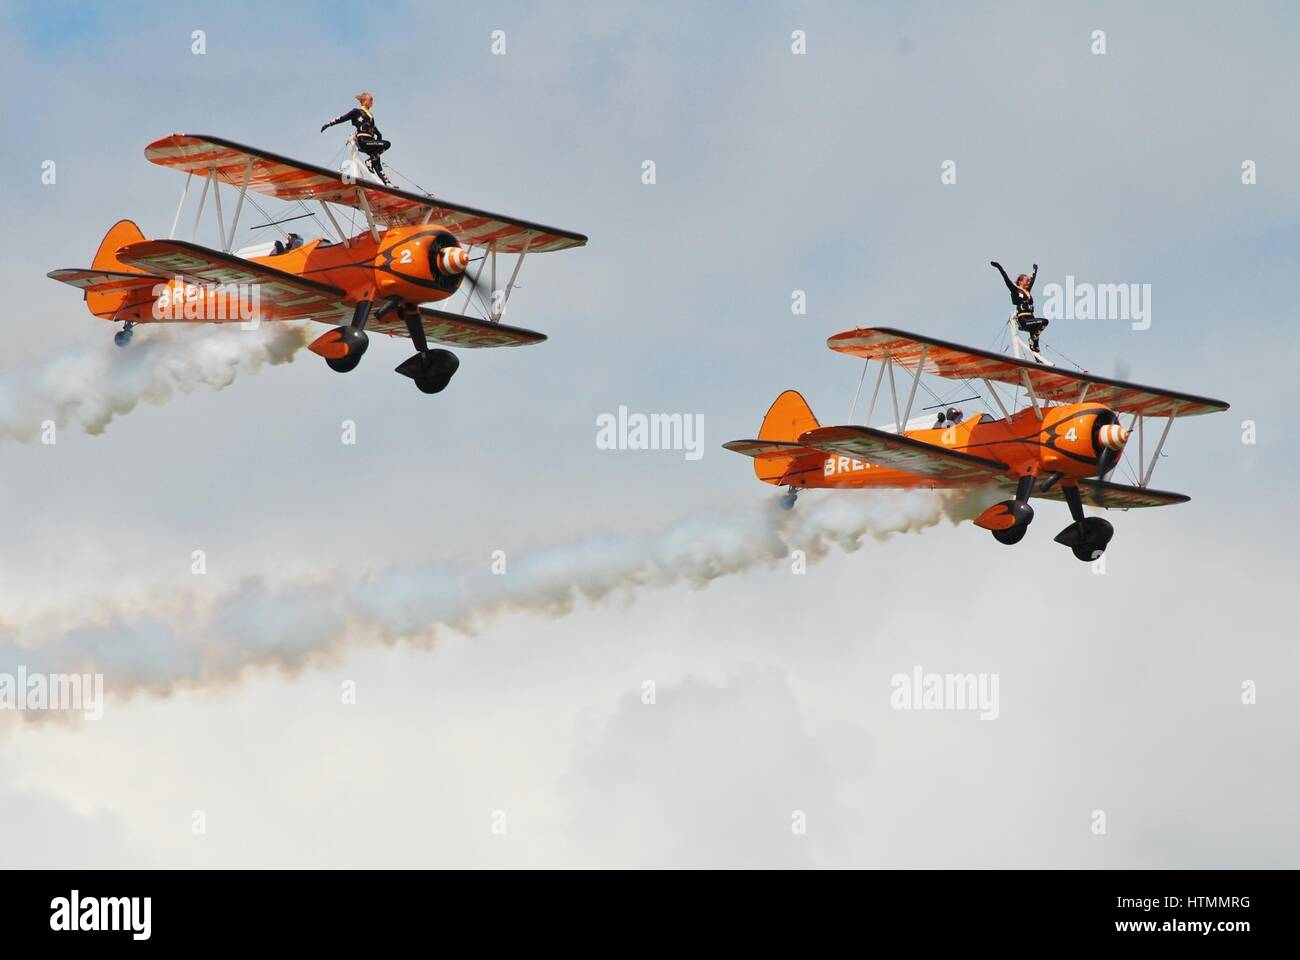 The Breitling Wing Walking team perform at the Dunsfold airshow in surrey, england. The team fly 1940s Boeing Stearman - Stock Image